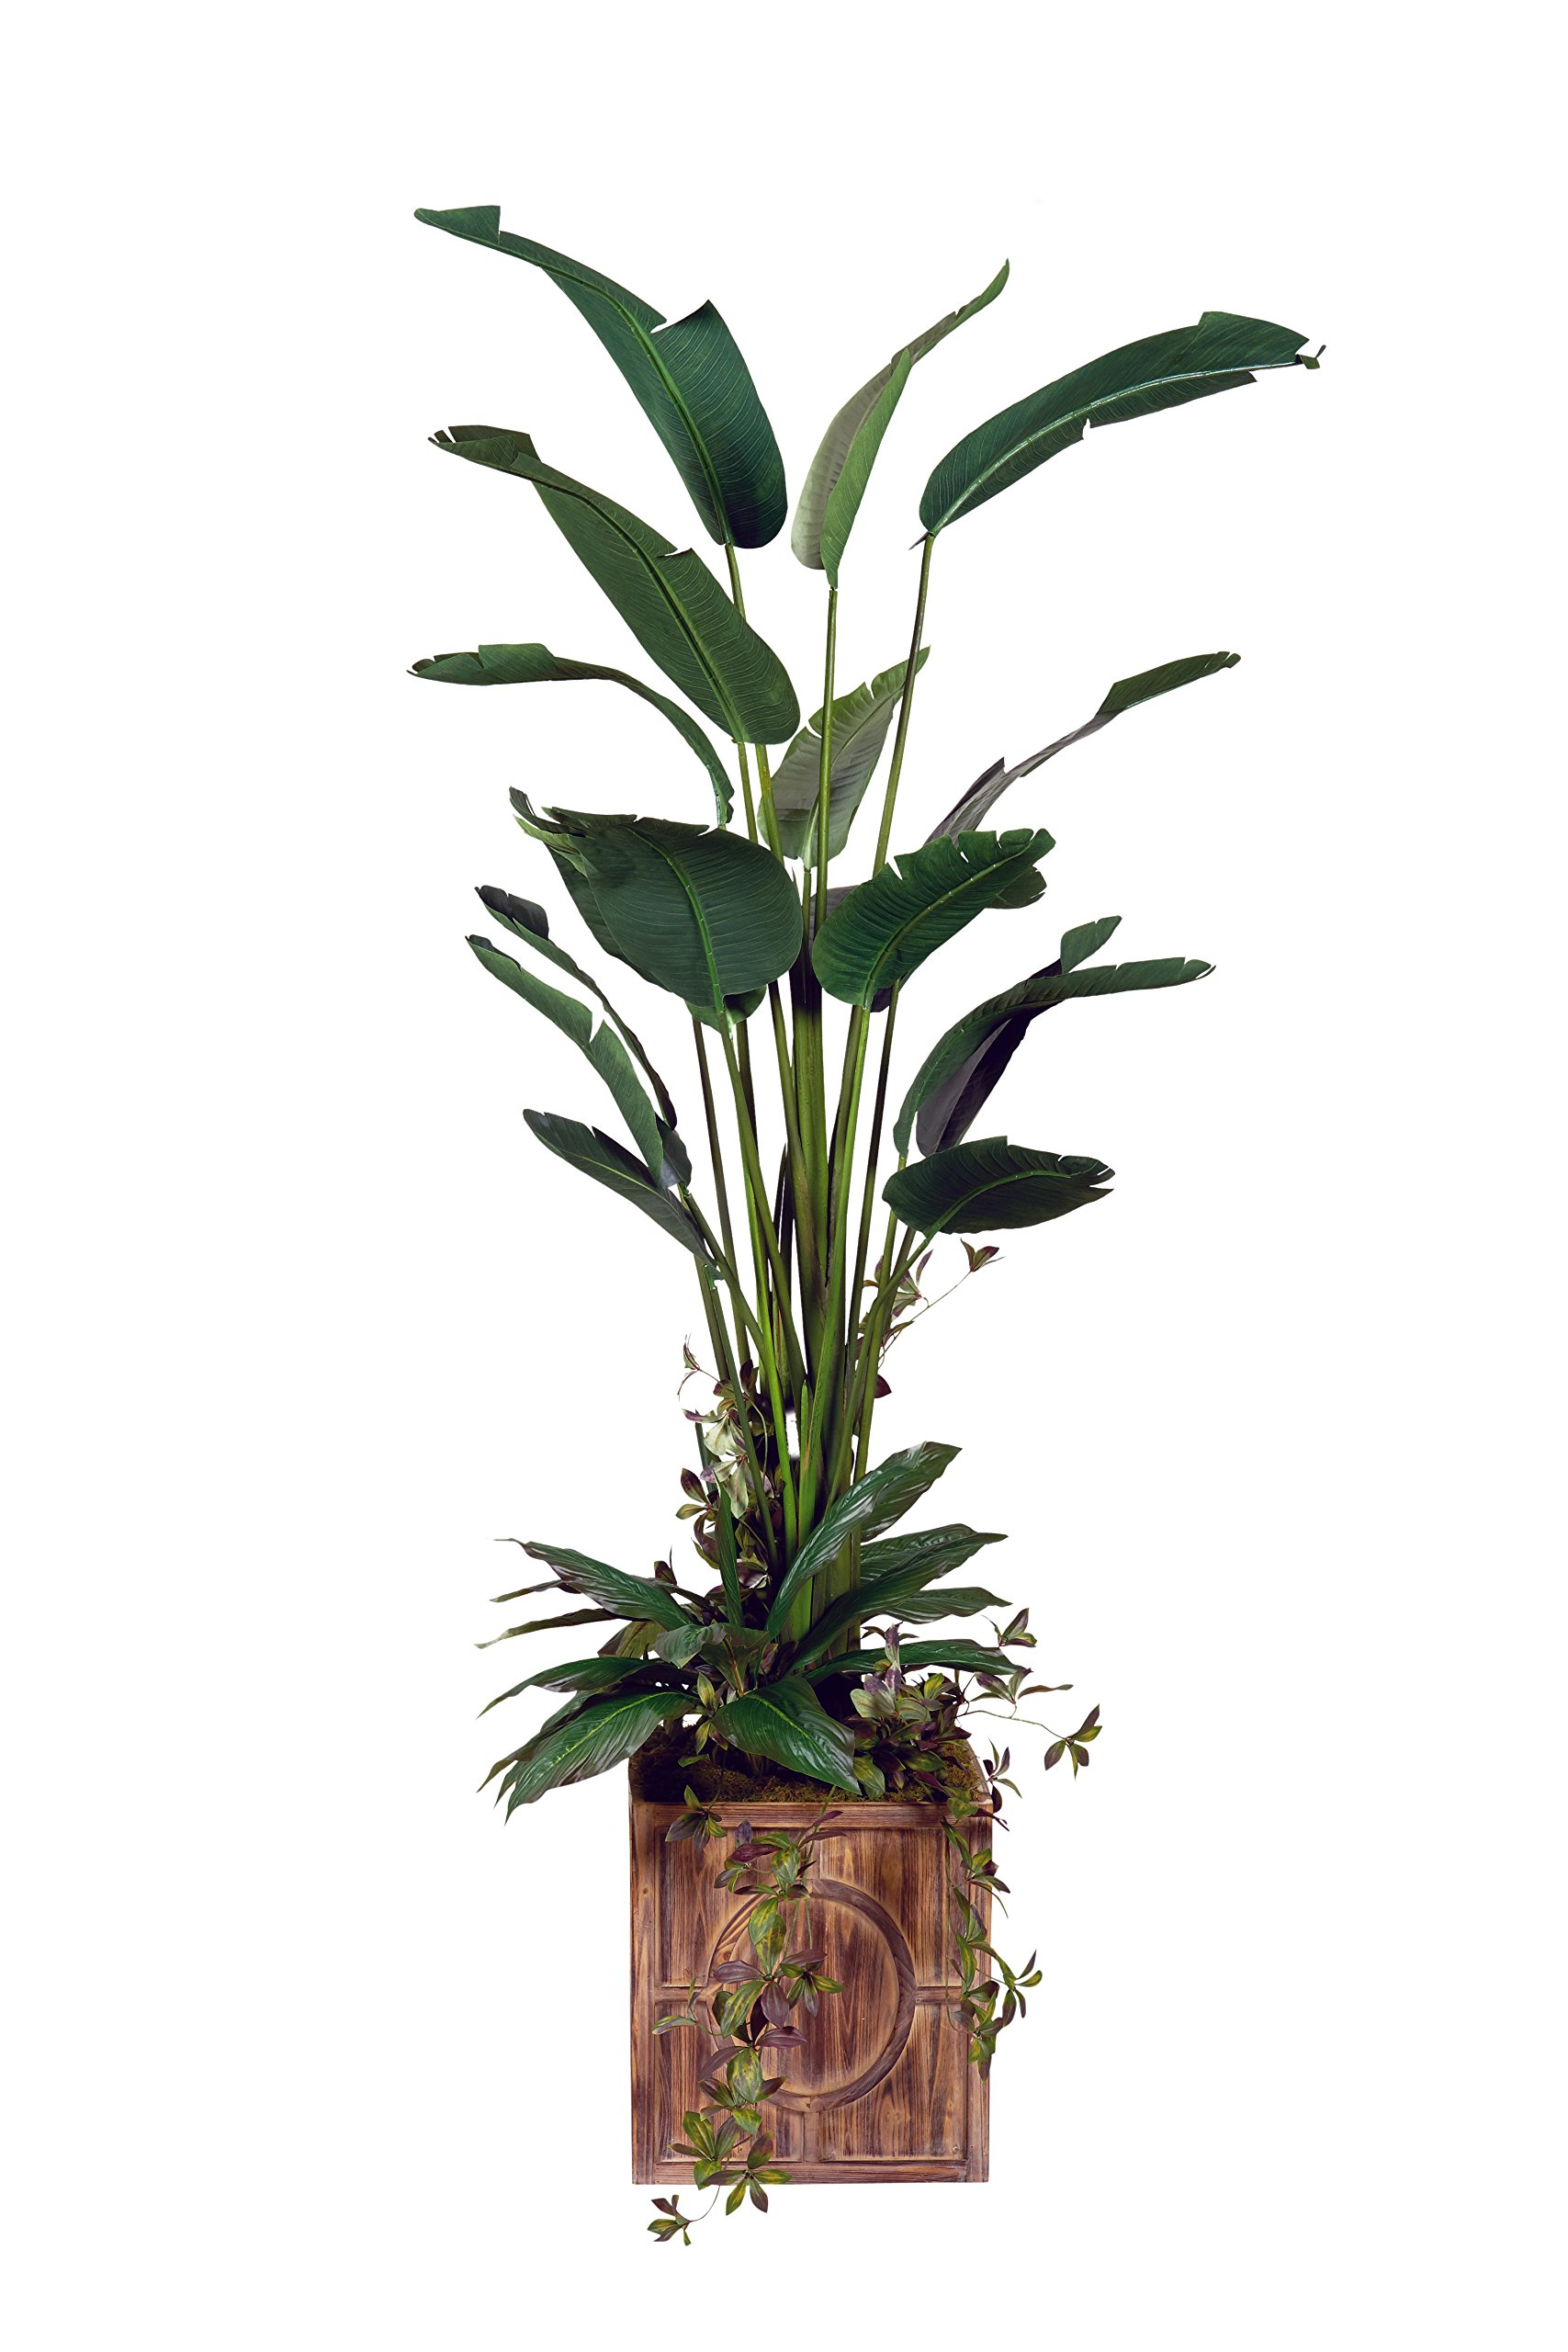 D & W Silks 317117 Bird of Paradise Tree in Square Wood Planter, Green/Brown